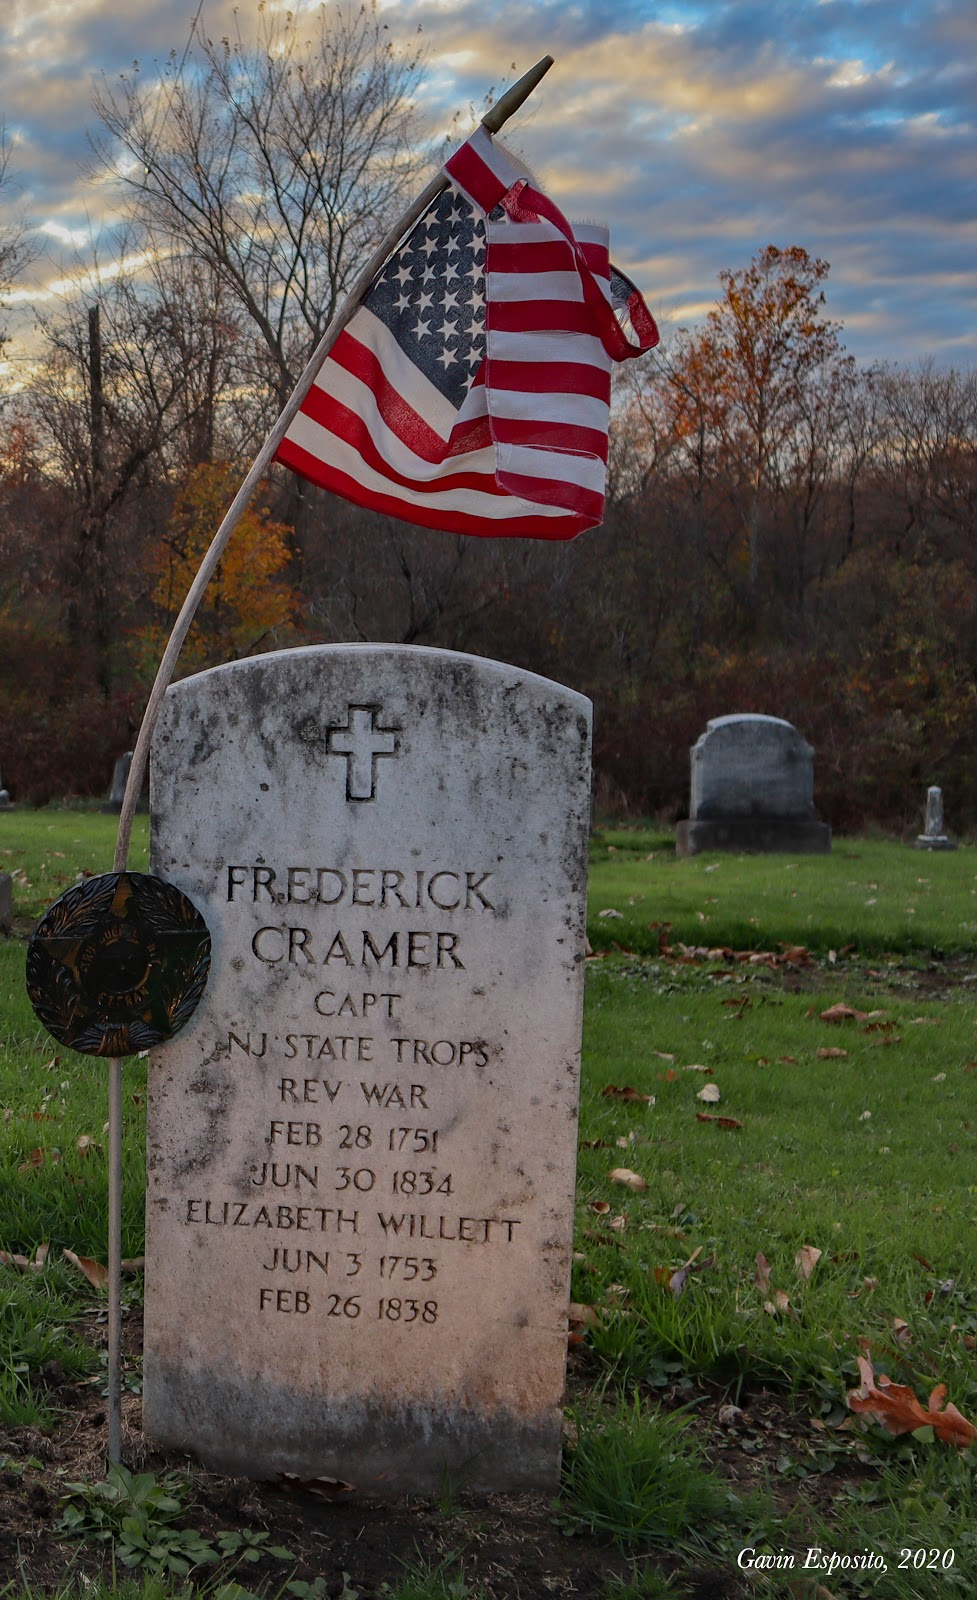 Erected by a descendent within the last decade,  Frederick and Elizabeth Cramer's headstone is the newest in Old North (Photo by Gavin Esposito).